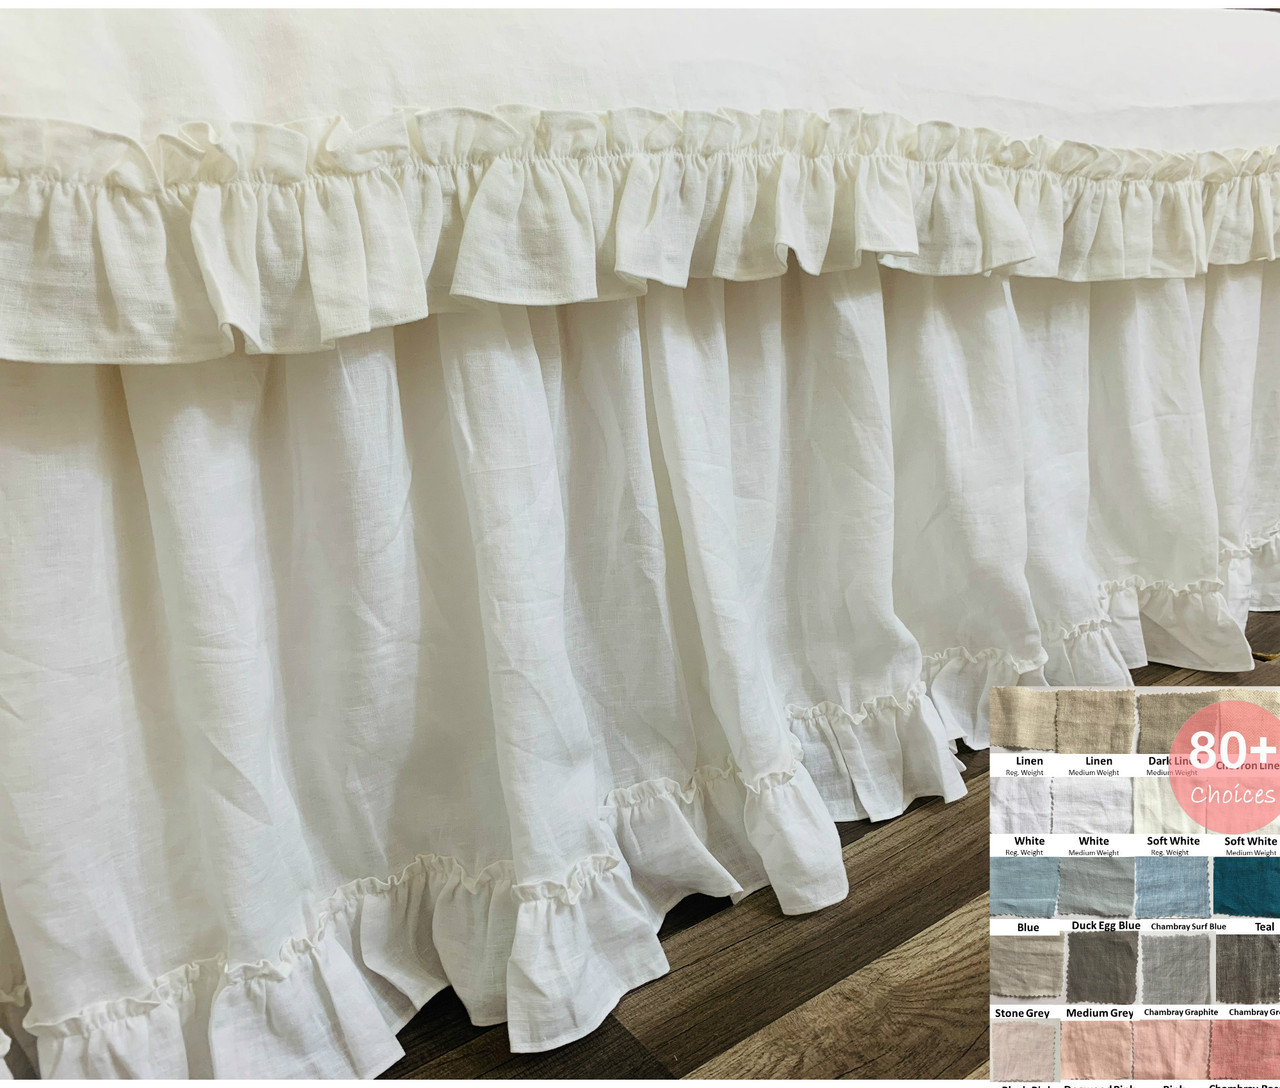 Picture of: Country Ruffle Bedskirt In Natural Linen 15 24 Drop Natural Linen White Grey Cream Pink Blue Stripe Chevron 40 Colors Custom Size Queen King Calif King Twin